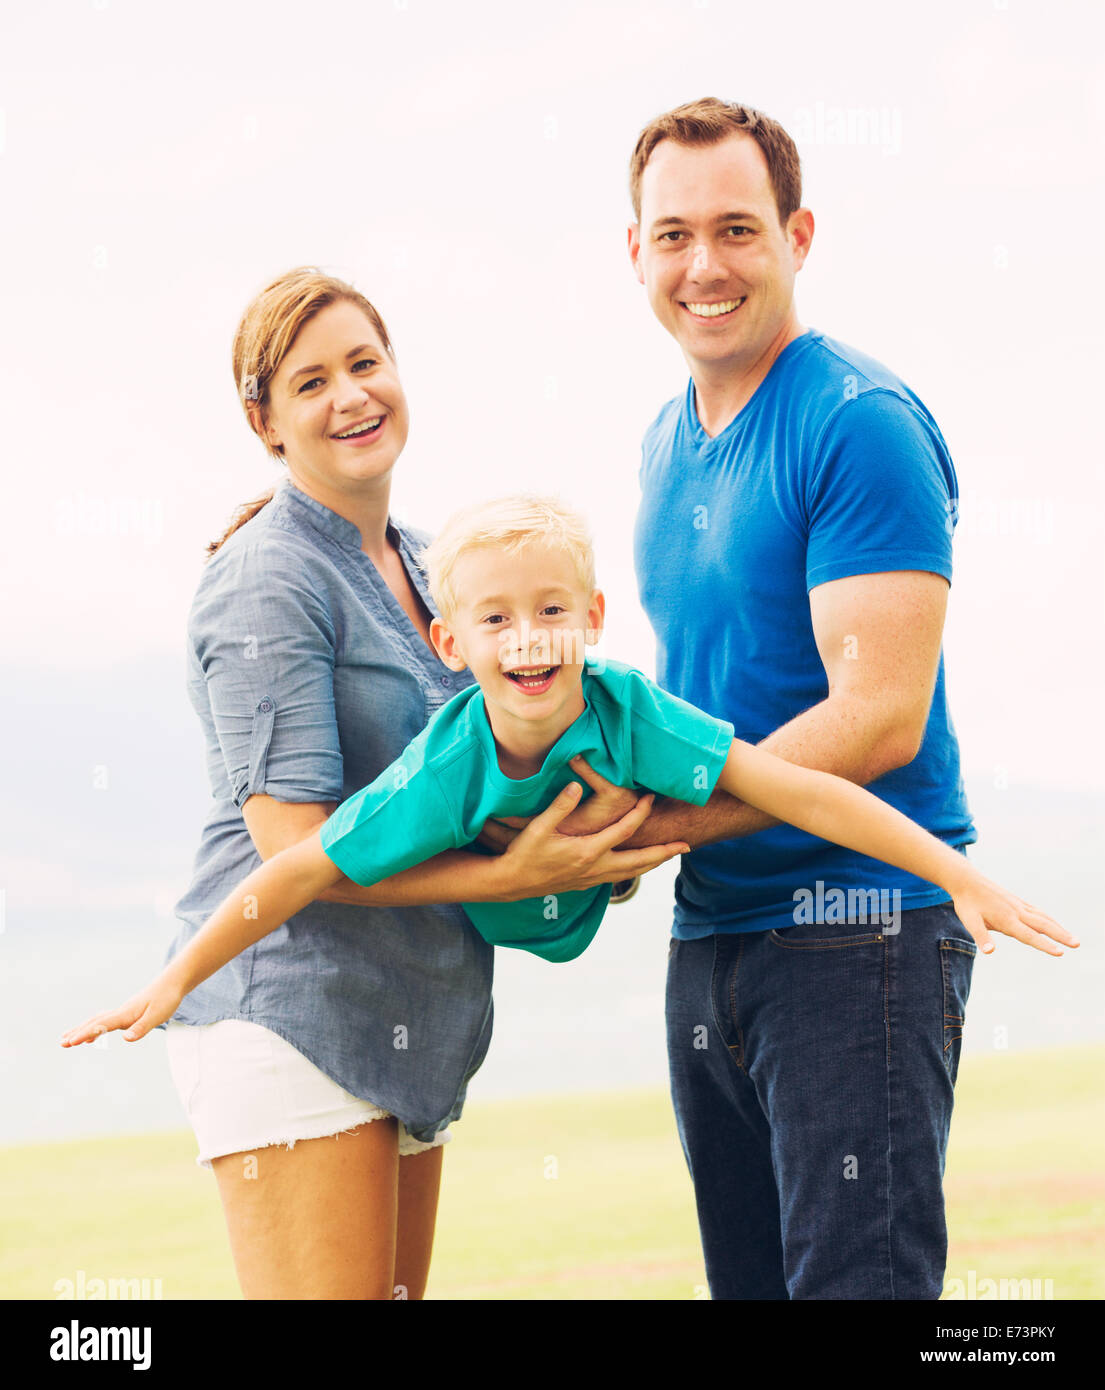 Happy Family Outside Playing Airplane with Young Son - Stock Image